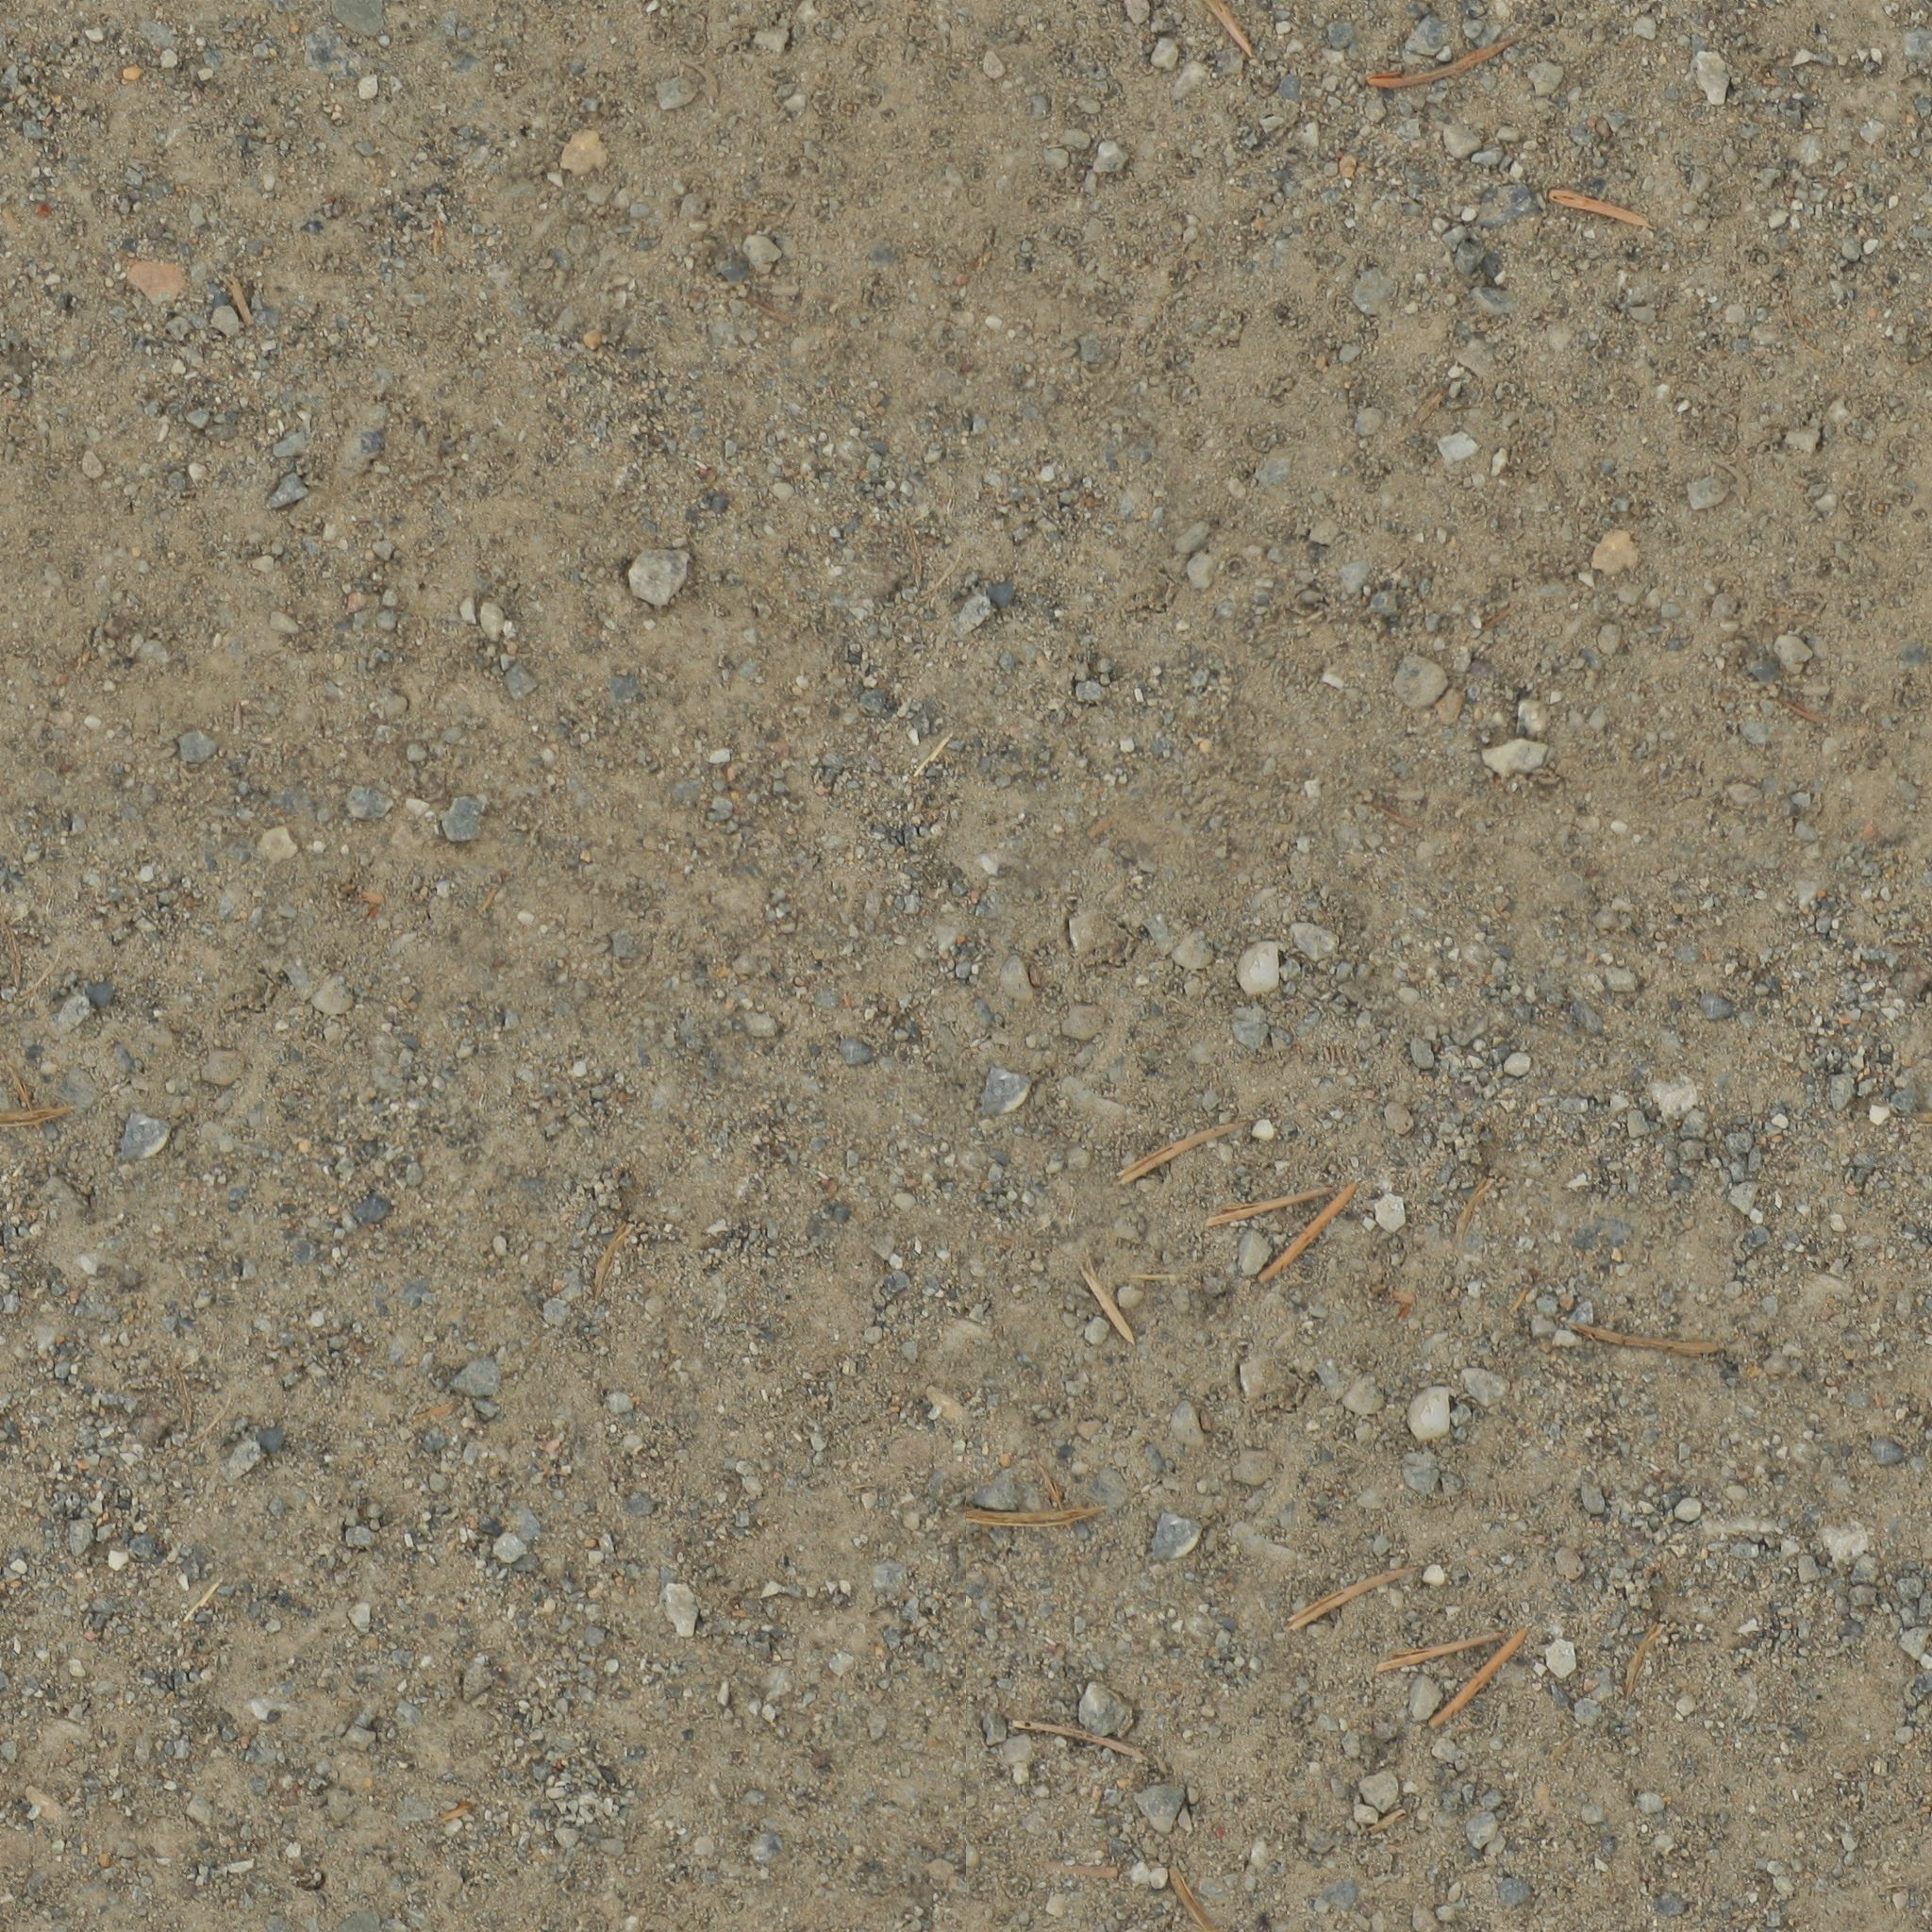 Textures architecture roads roads dirt road texture seamless - Find This Pin And More On Cc0 Seamless Textures Zero Cc Tileable Dirt Seamless Texture